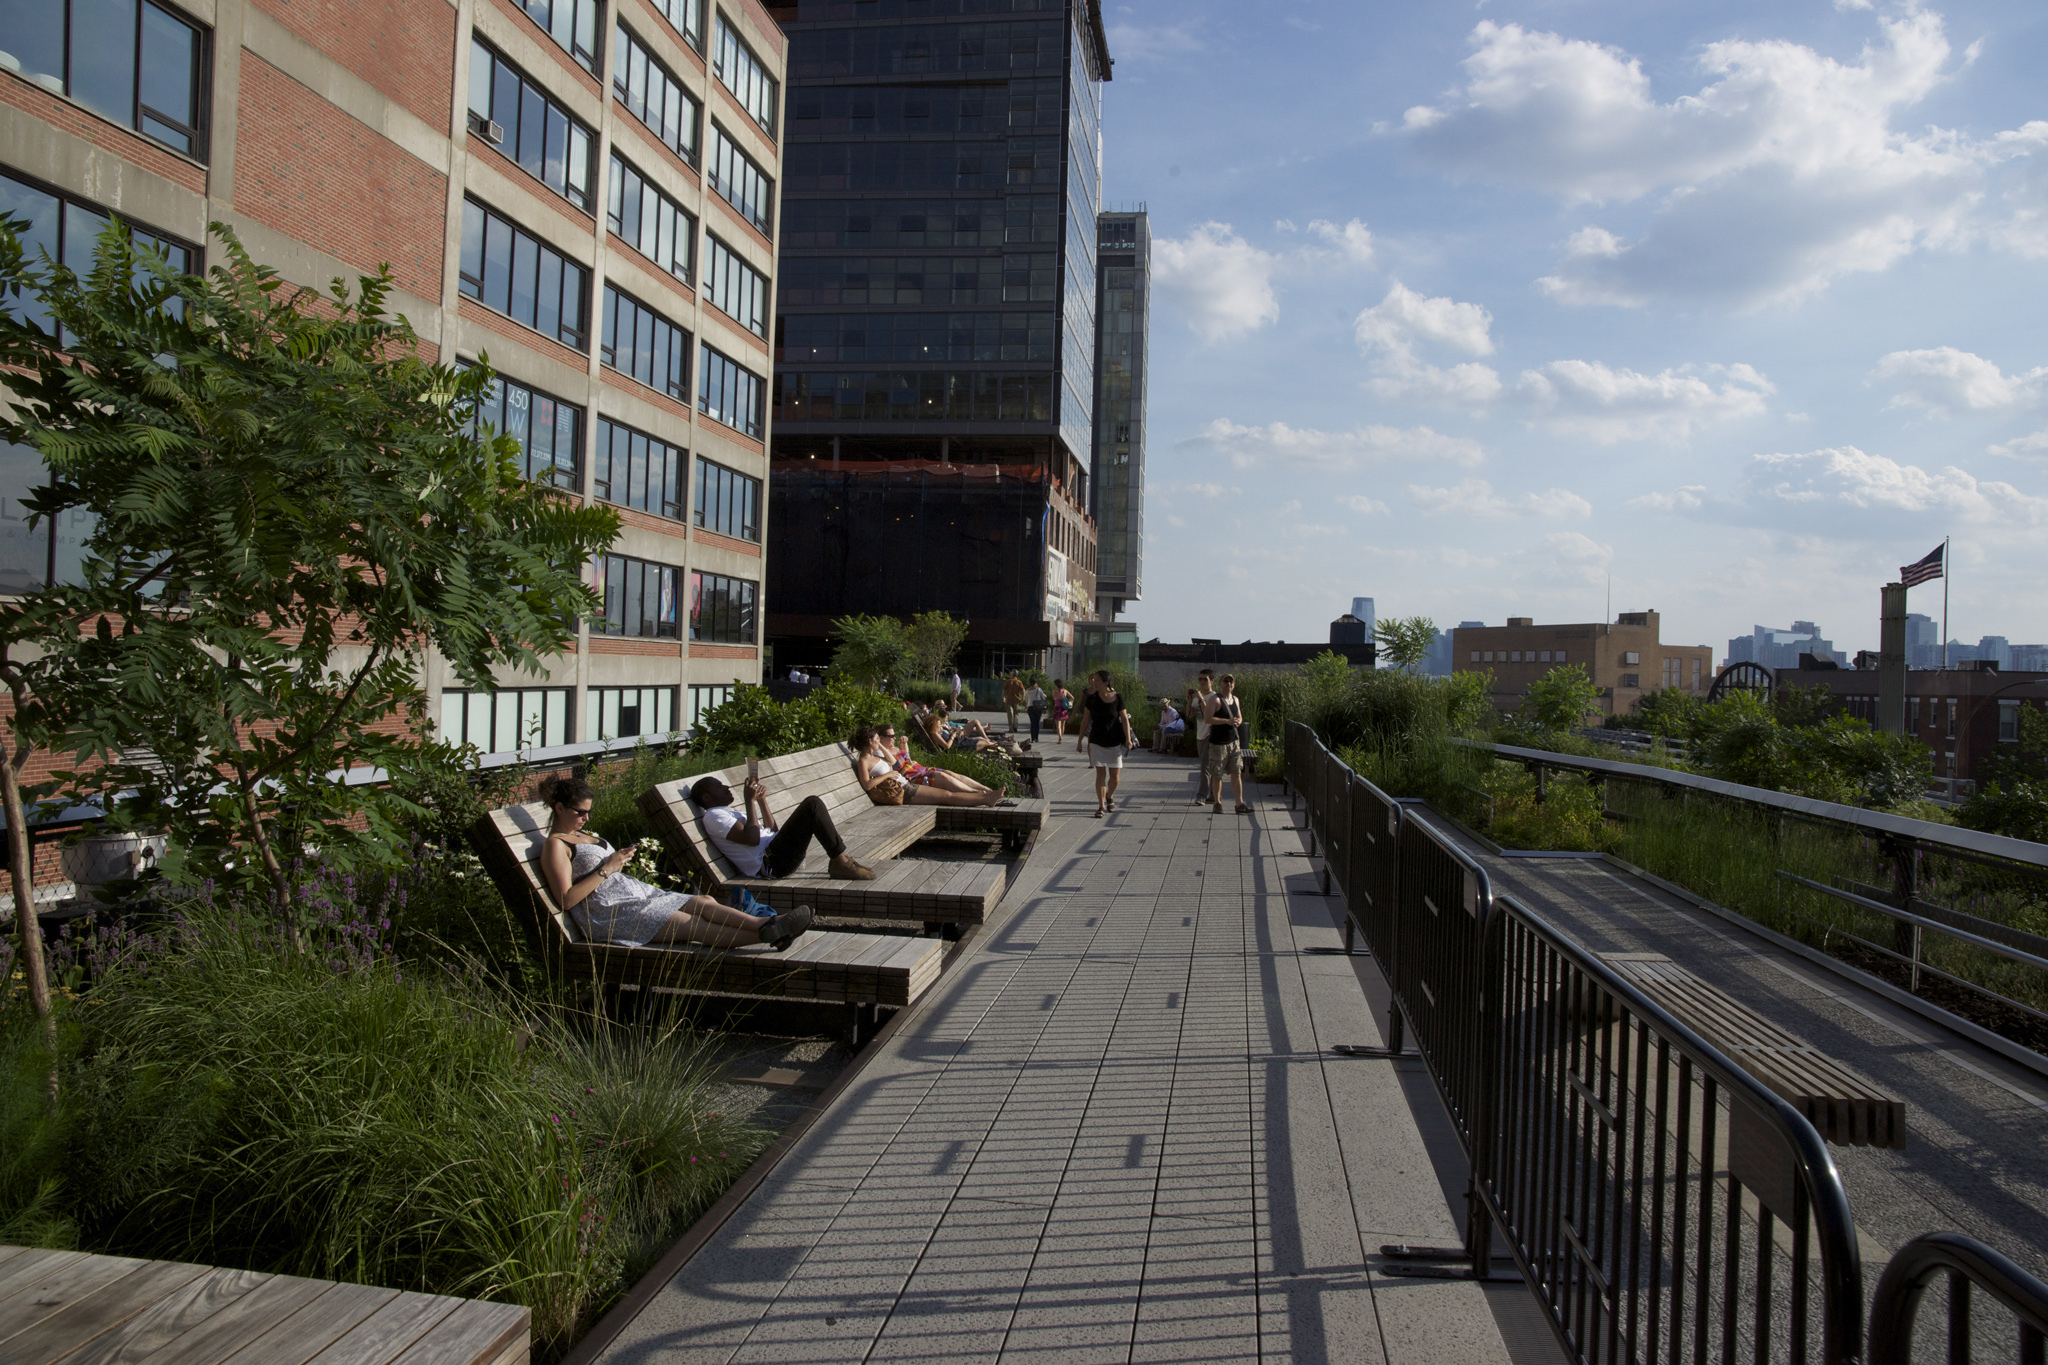 Stroll up and down the High Line